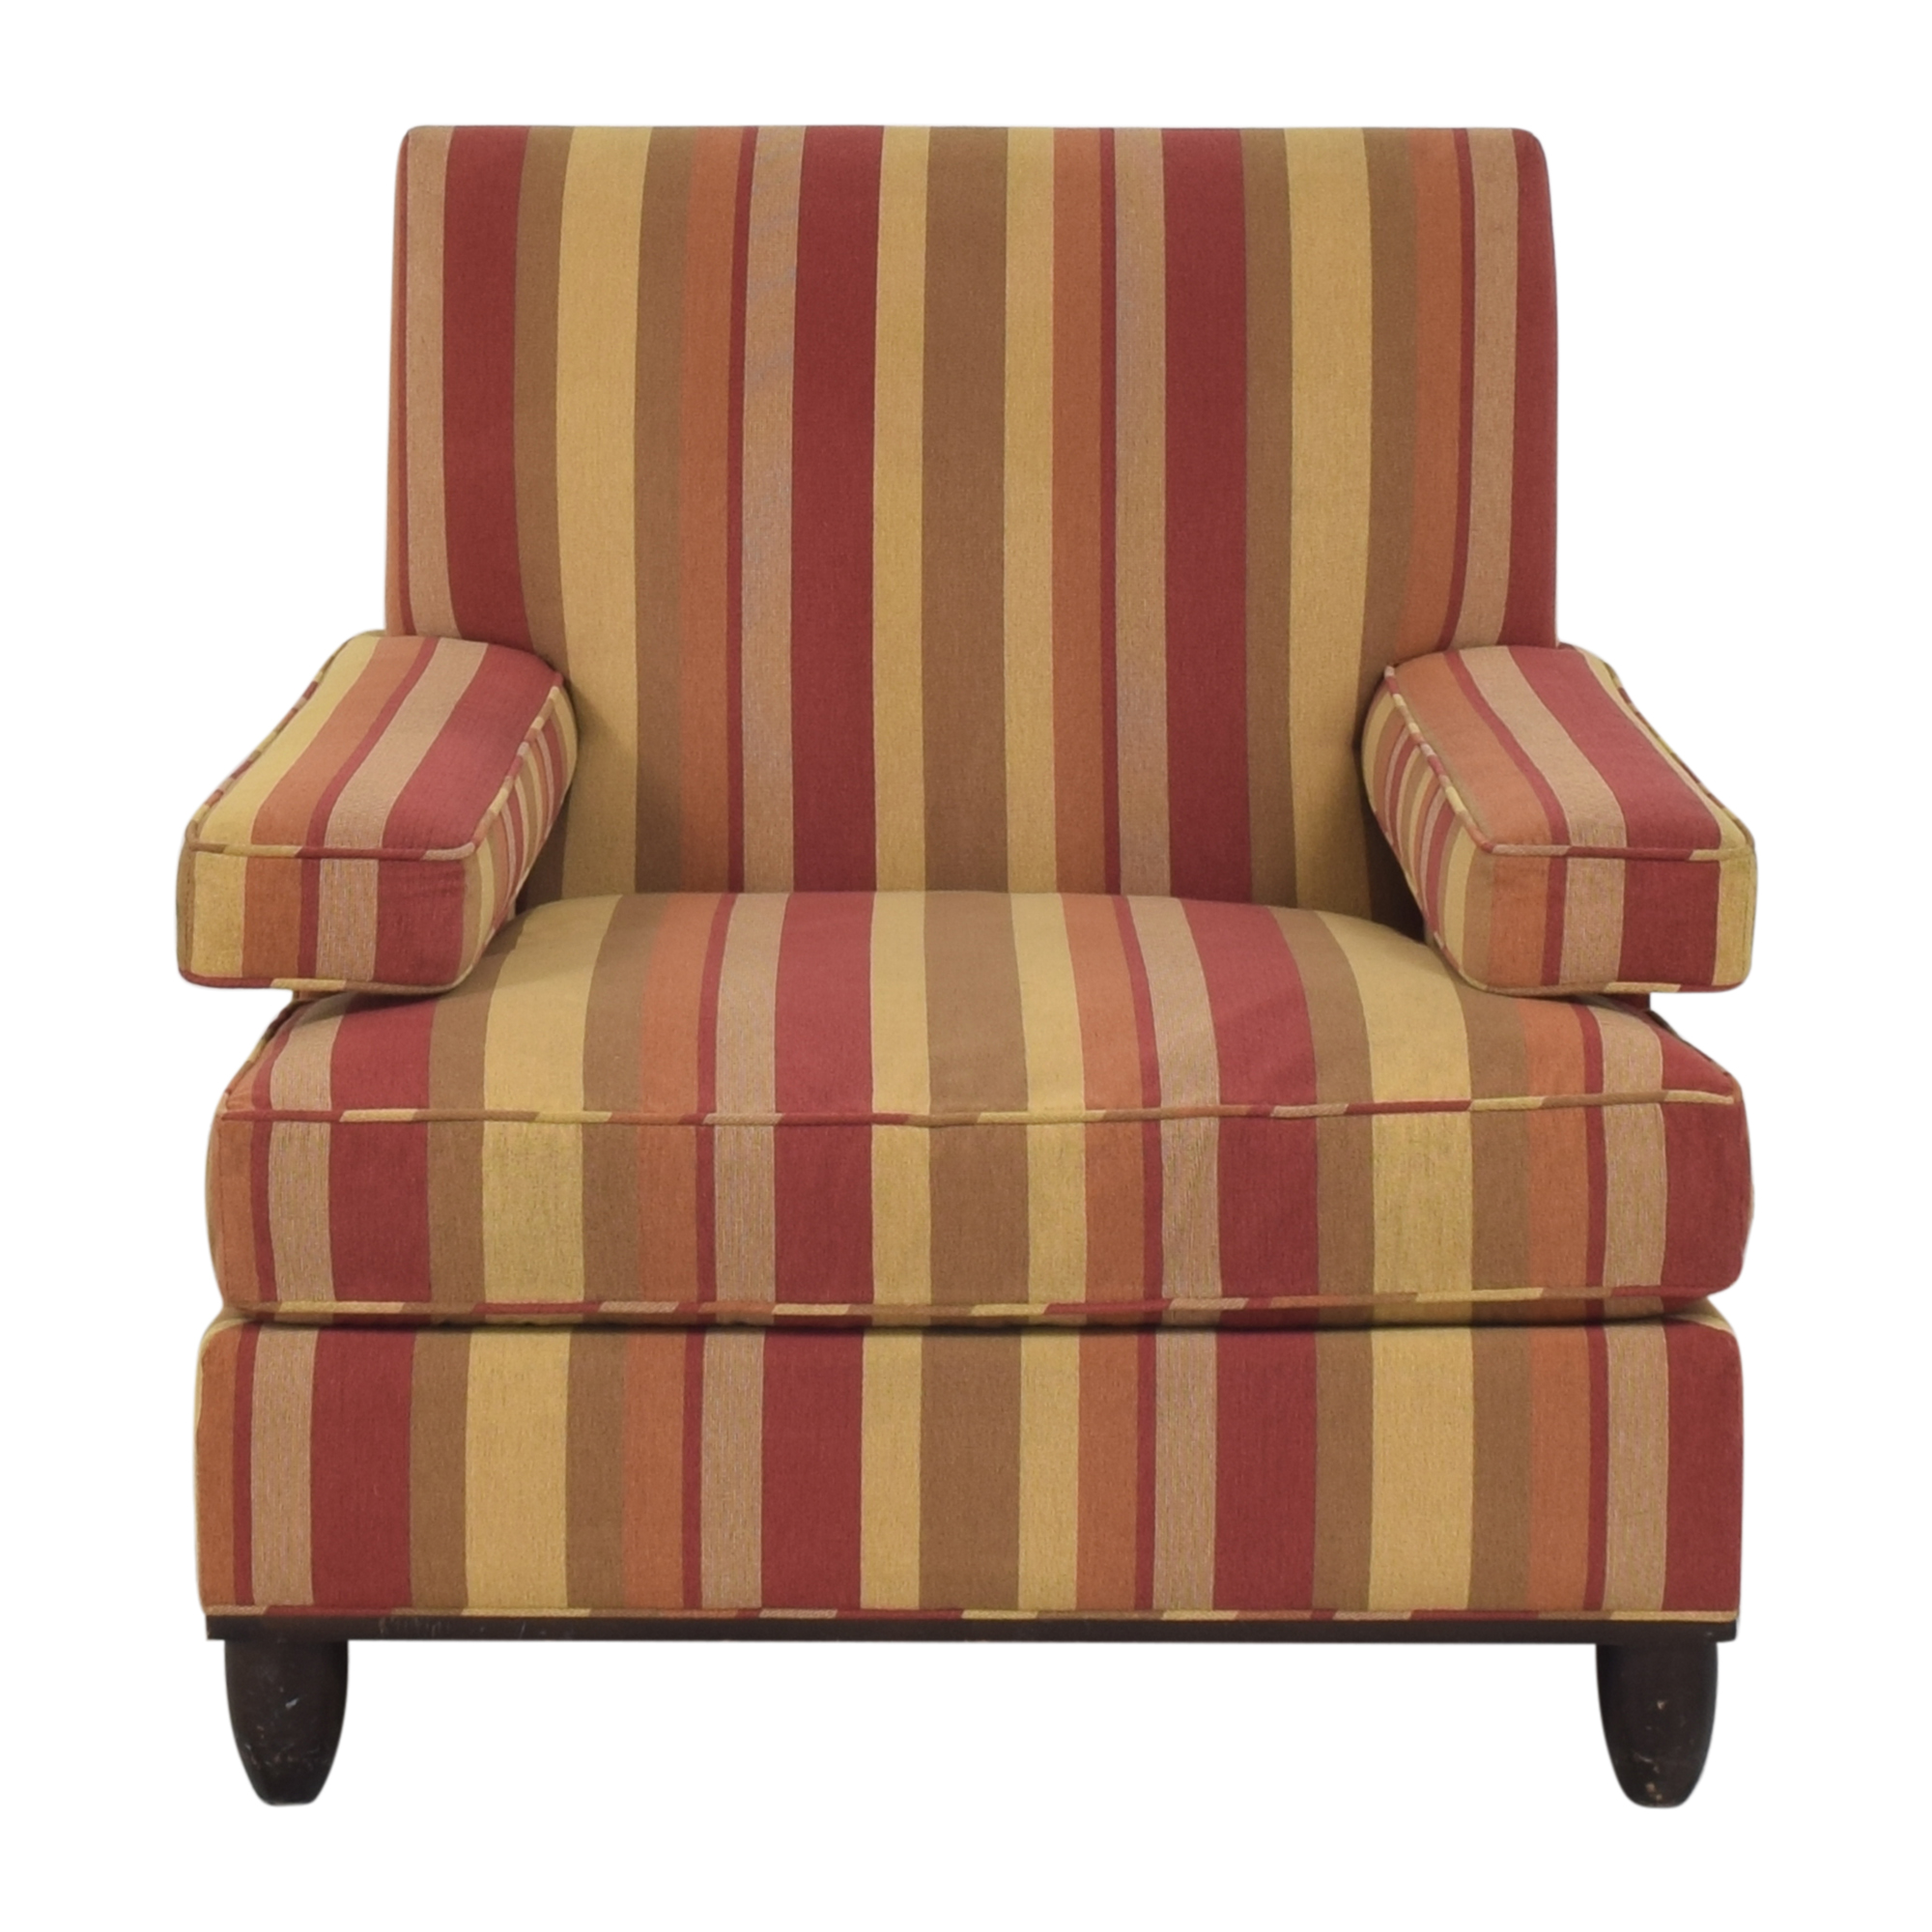 buy Bright Upholstered Club Chair Bright